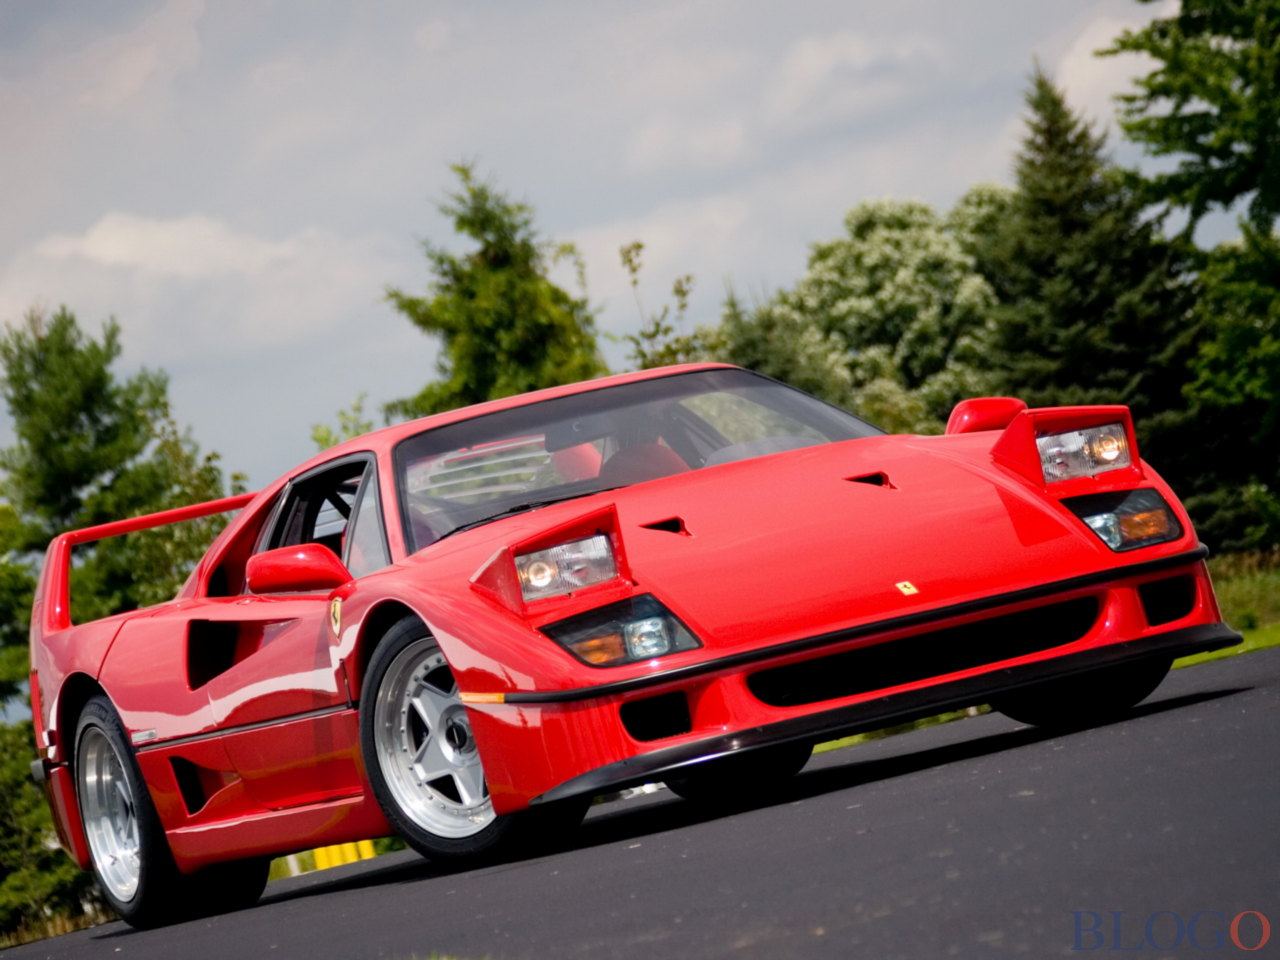 ferrari f40 prezzo foto e caratteristiche. Black Bedroom Furniture Sets. Home Design Ideas